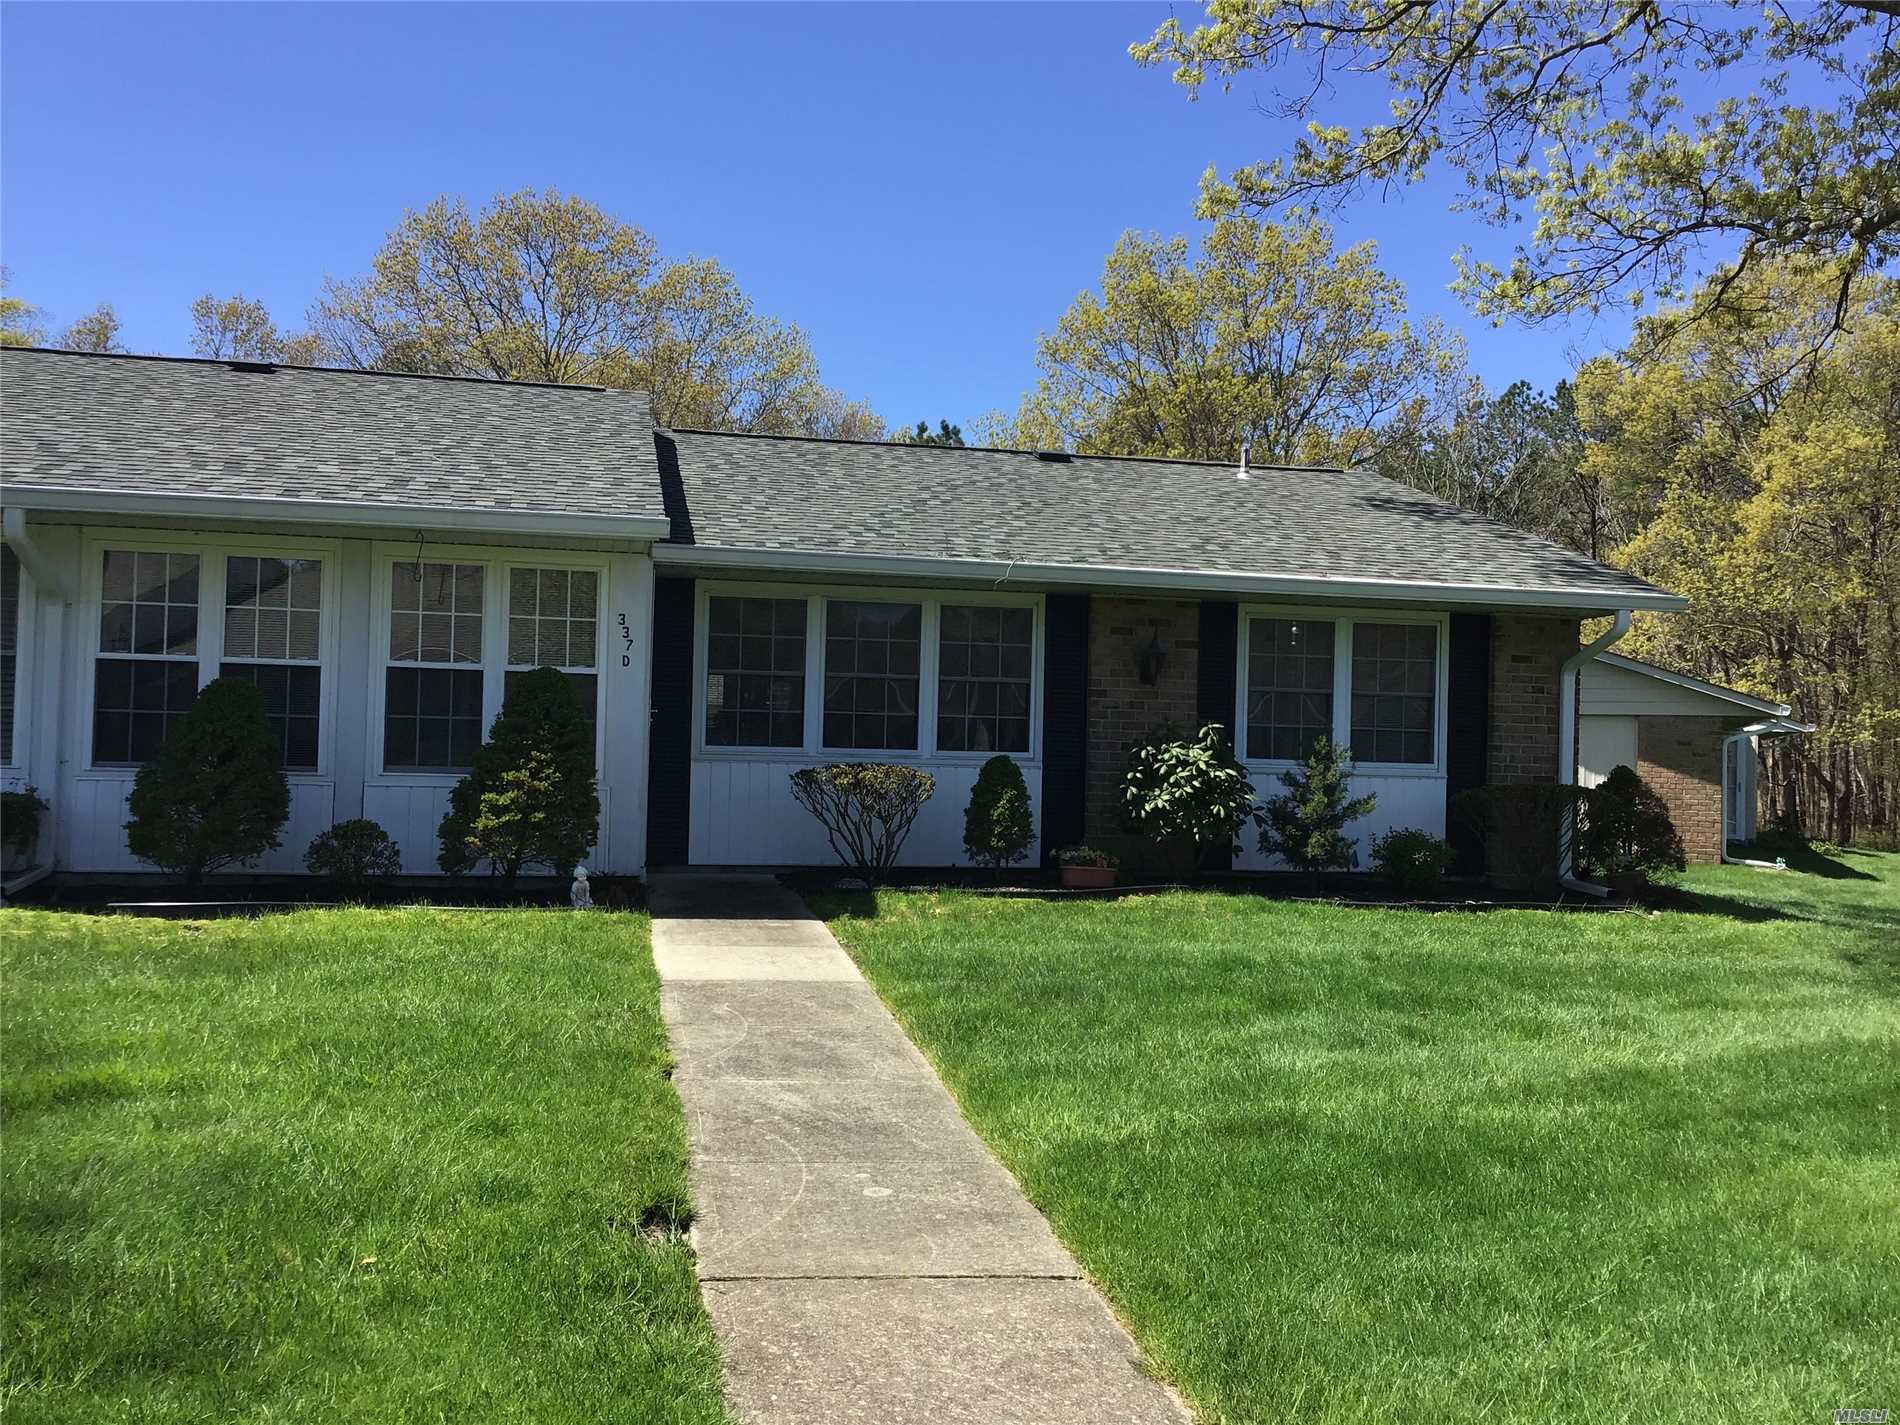 Charming Updated End Unit in Leisure Village. With Eat in Kitchen, wood cabinets and white on white appliances. Update bathroom with sky light. Newer windows and garage door. Community features active clubhouse, golf, pool, and so much more! 1 pet permitted.